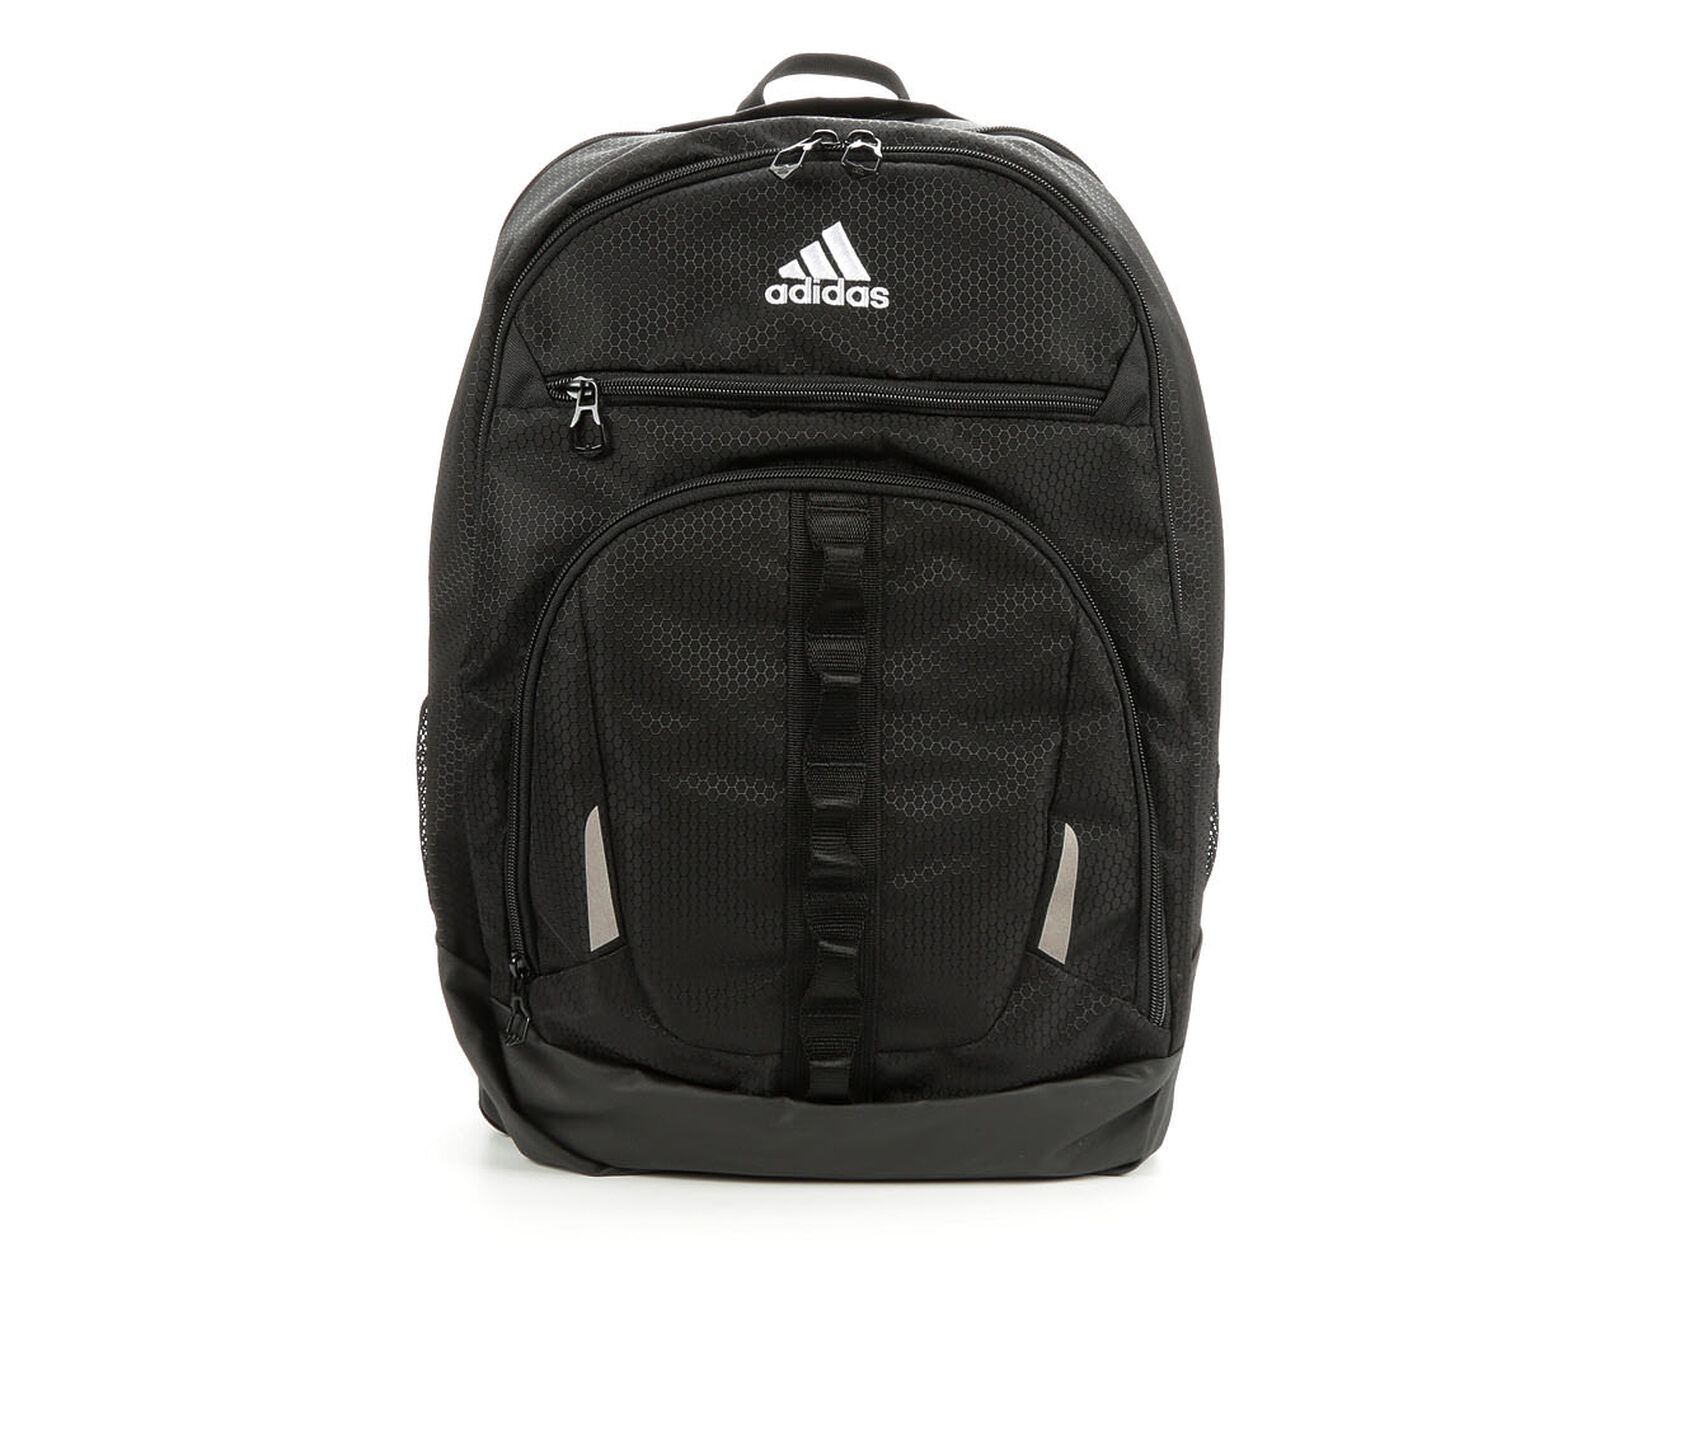 0ae008648efc Adidas Prime IV Backpack. Previous